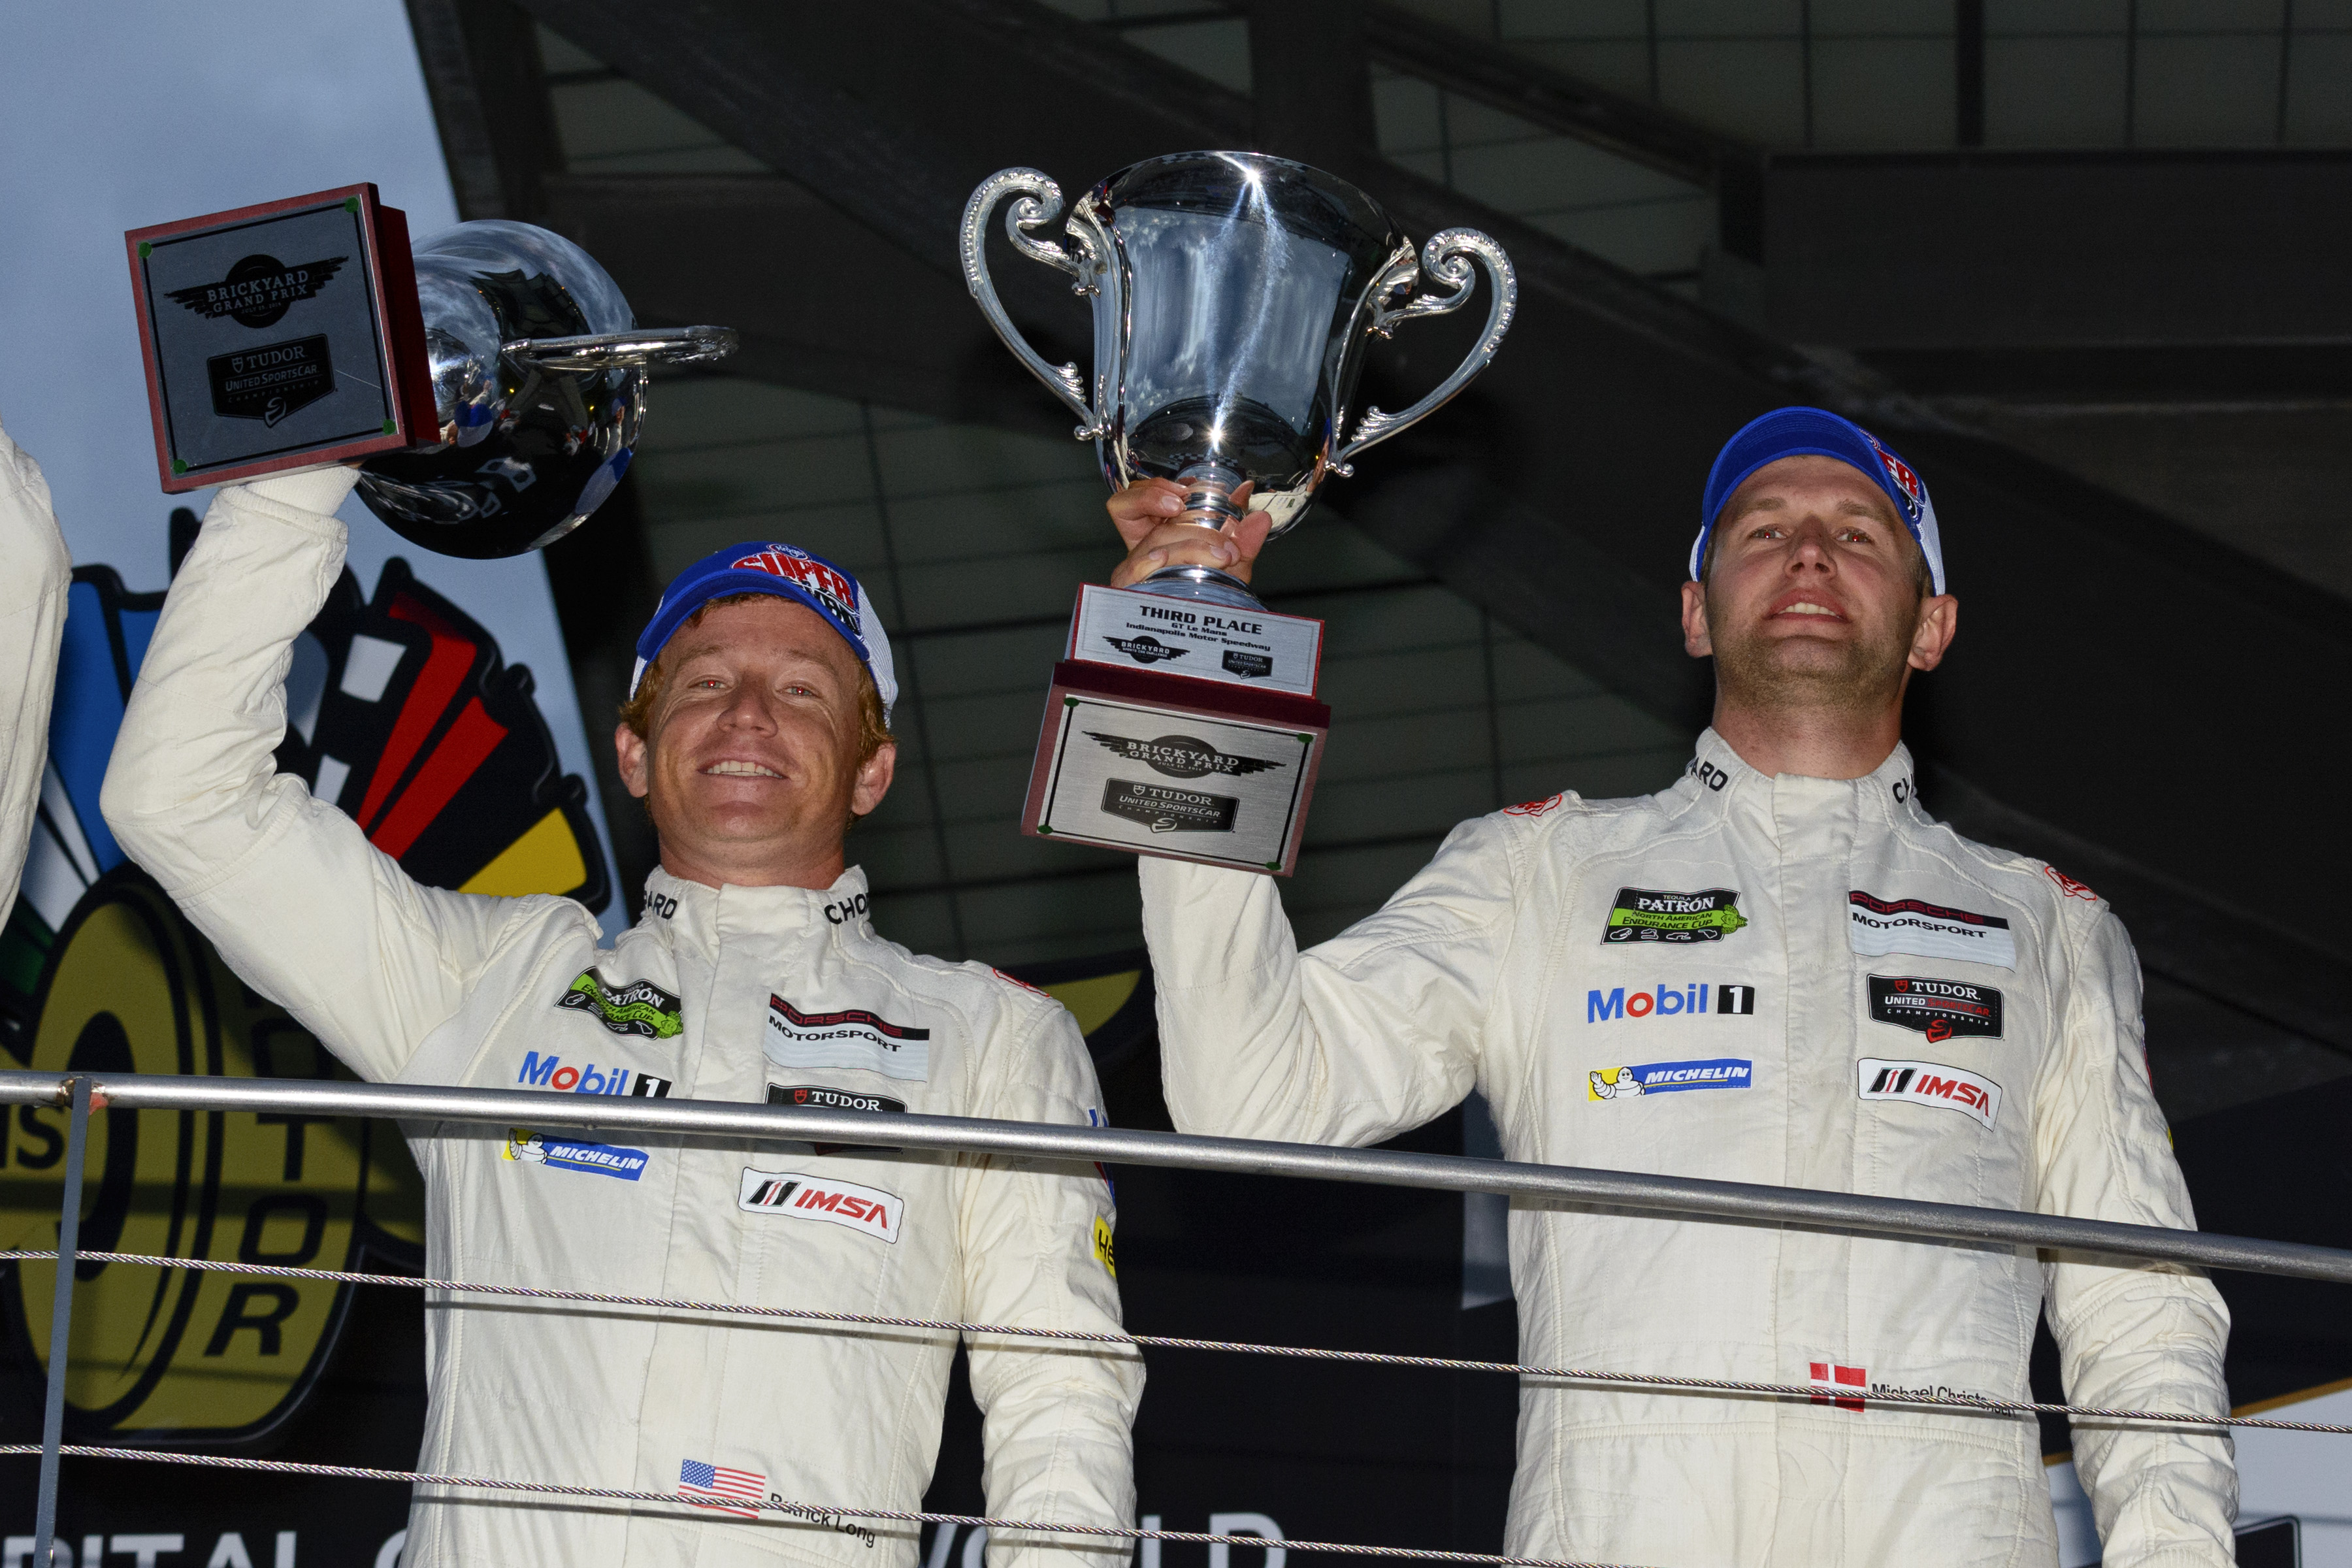 Patrick Long and Michael Christensen celebrate IMSA Podium at Indy in 2014, PCNA